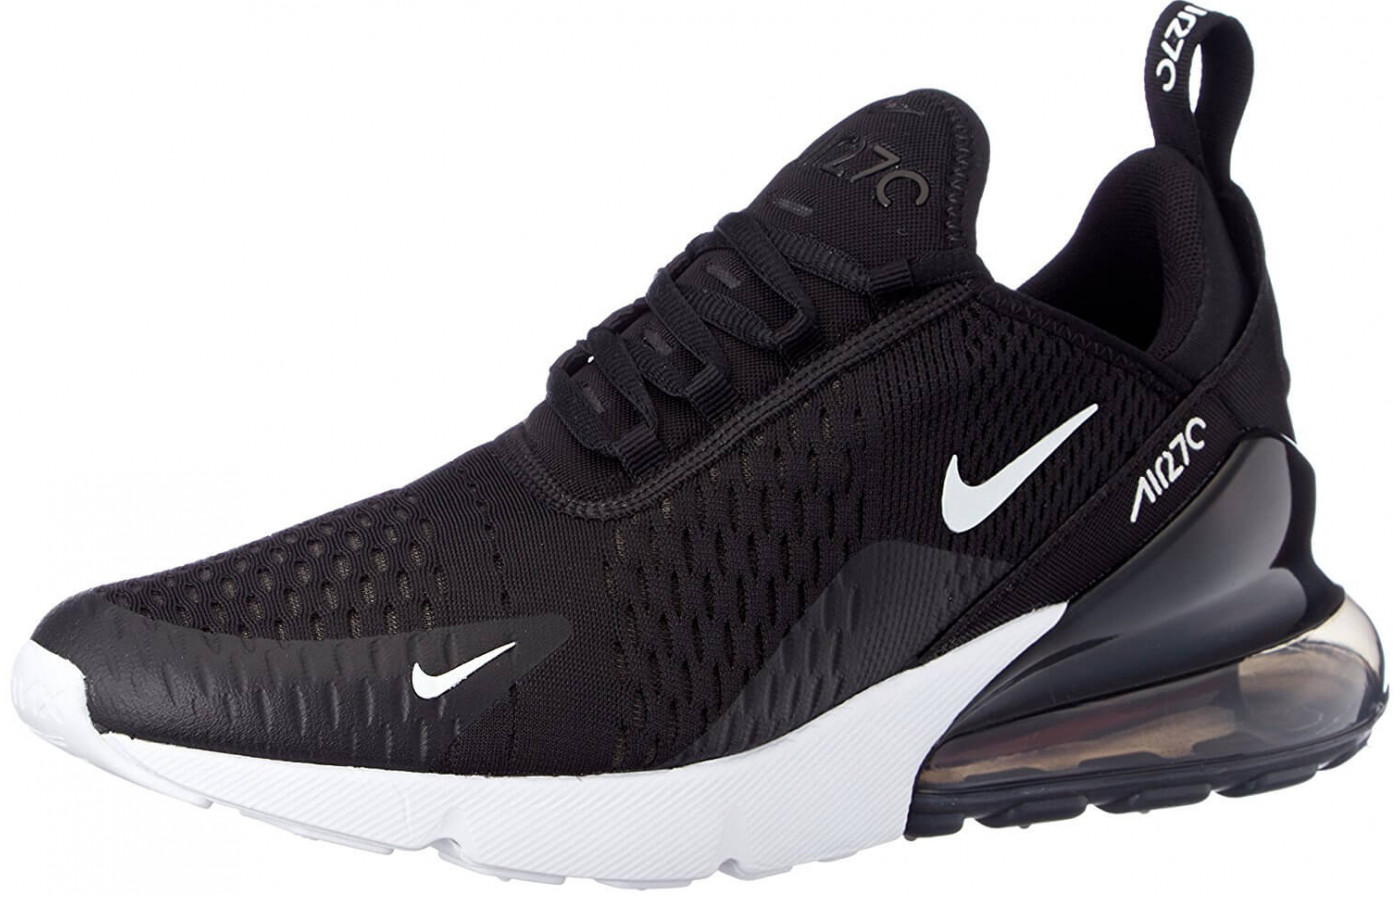 Nike Air Max 270 Reviewed To Buy Or Not In July 2019